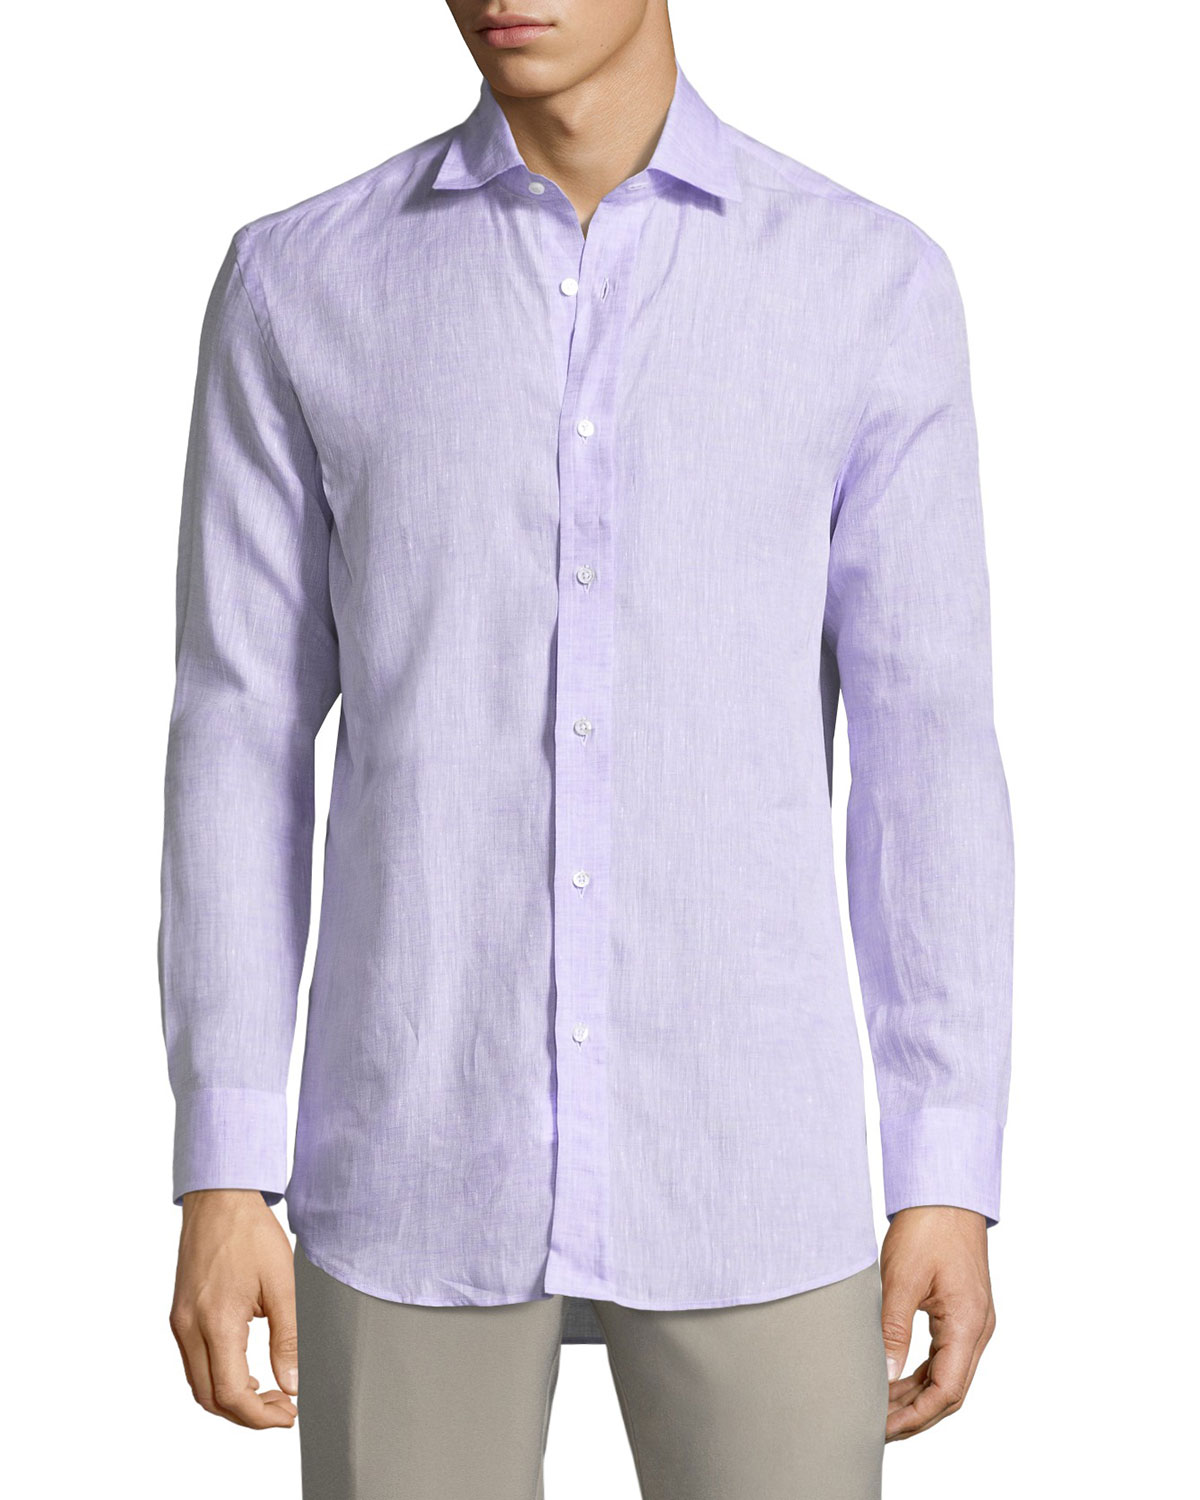 Textured Solid Linen Sport Shirt